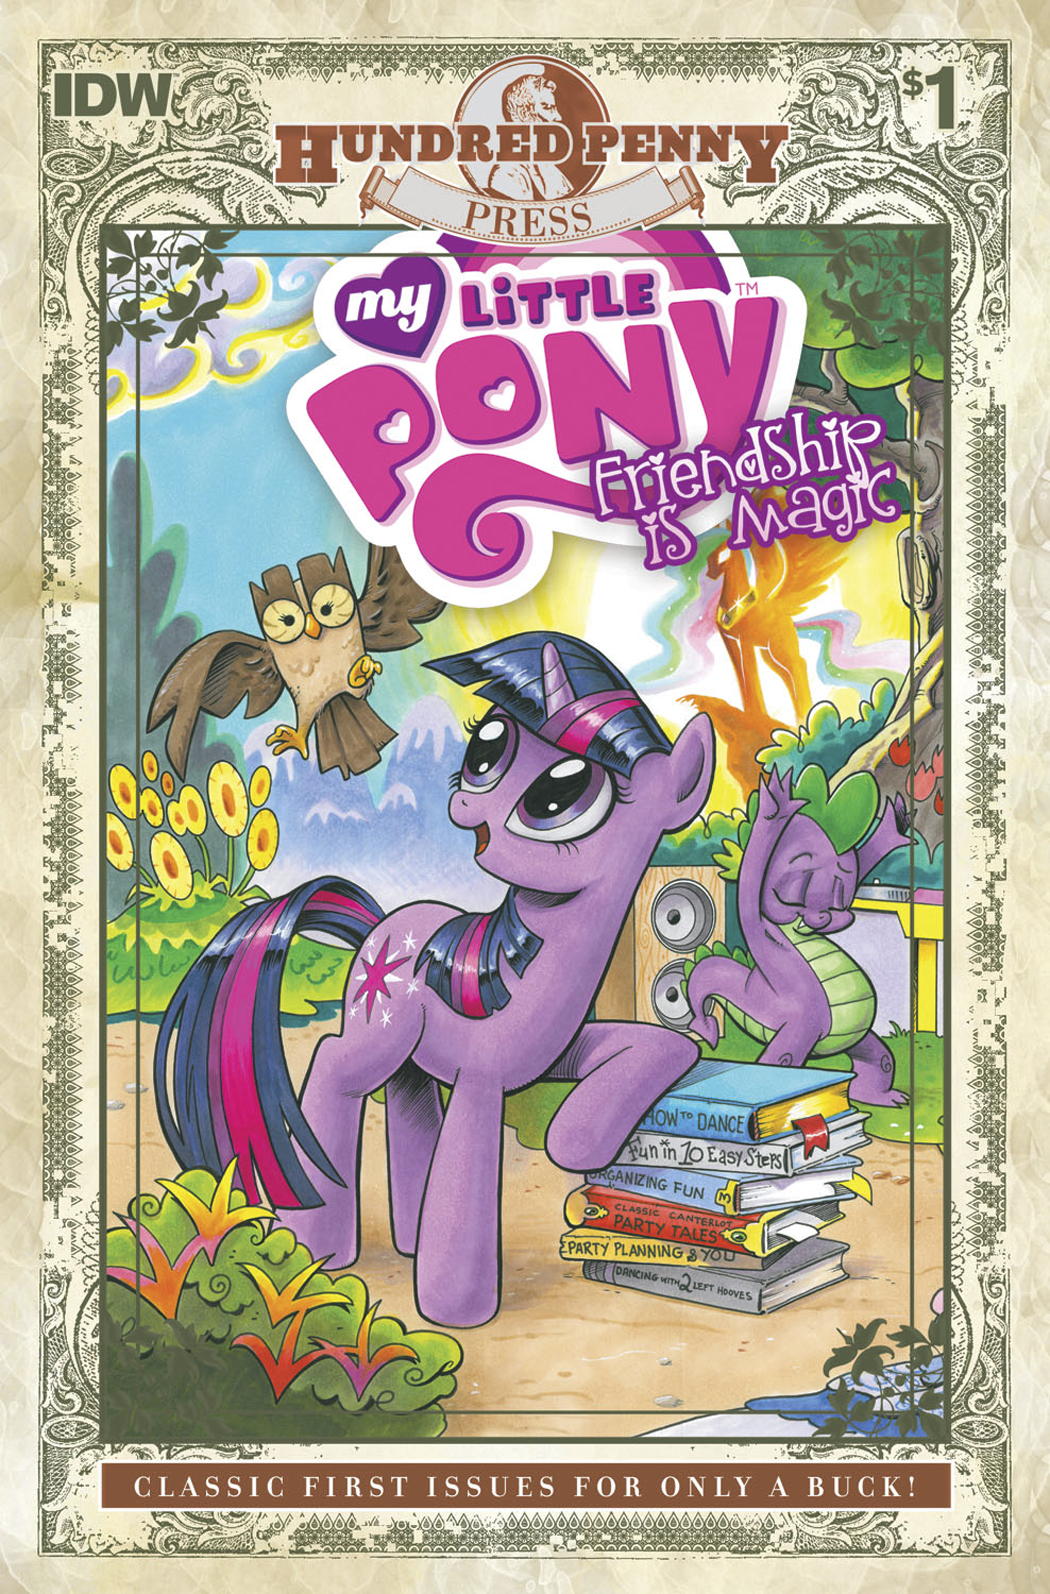 MLP FRIENDSHIP IS MAGIC 100 PENNY PRESS #1